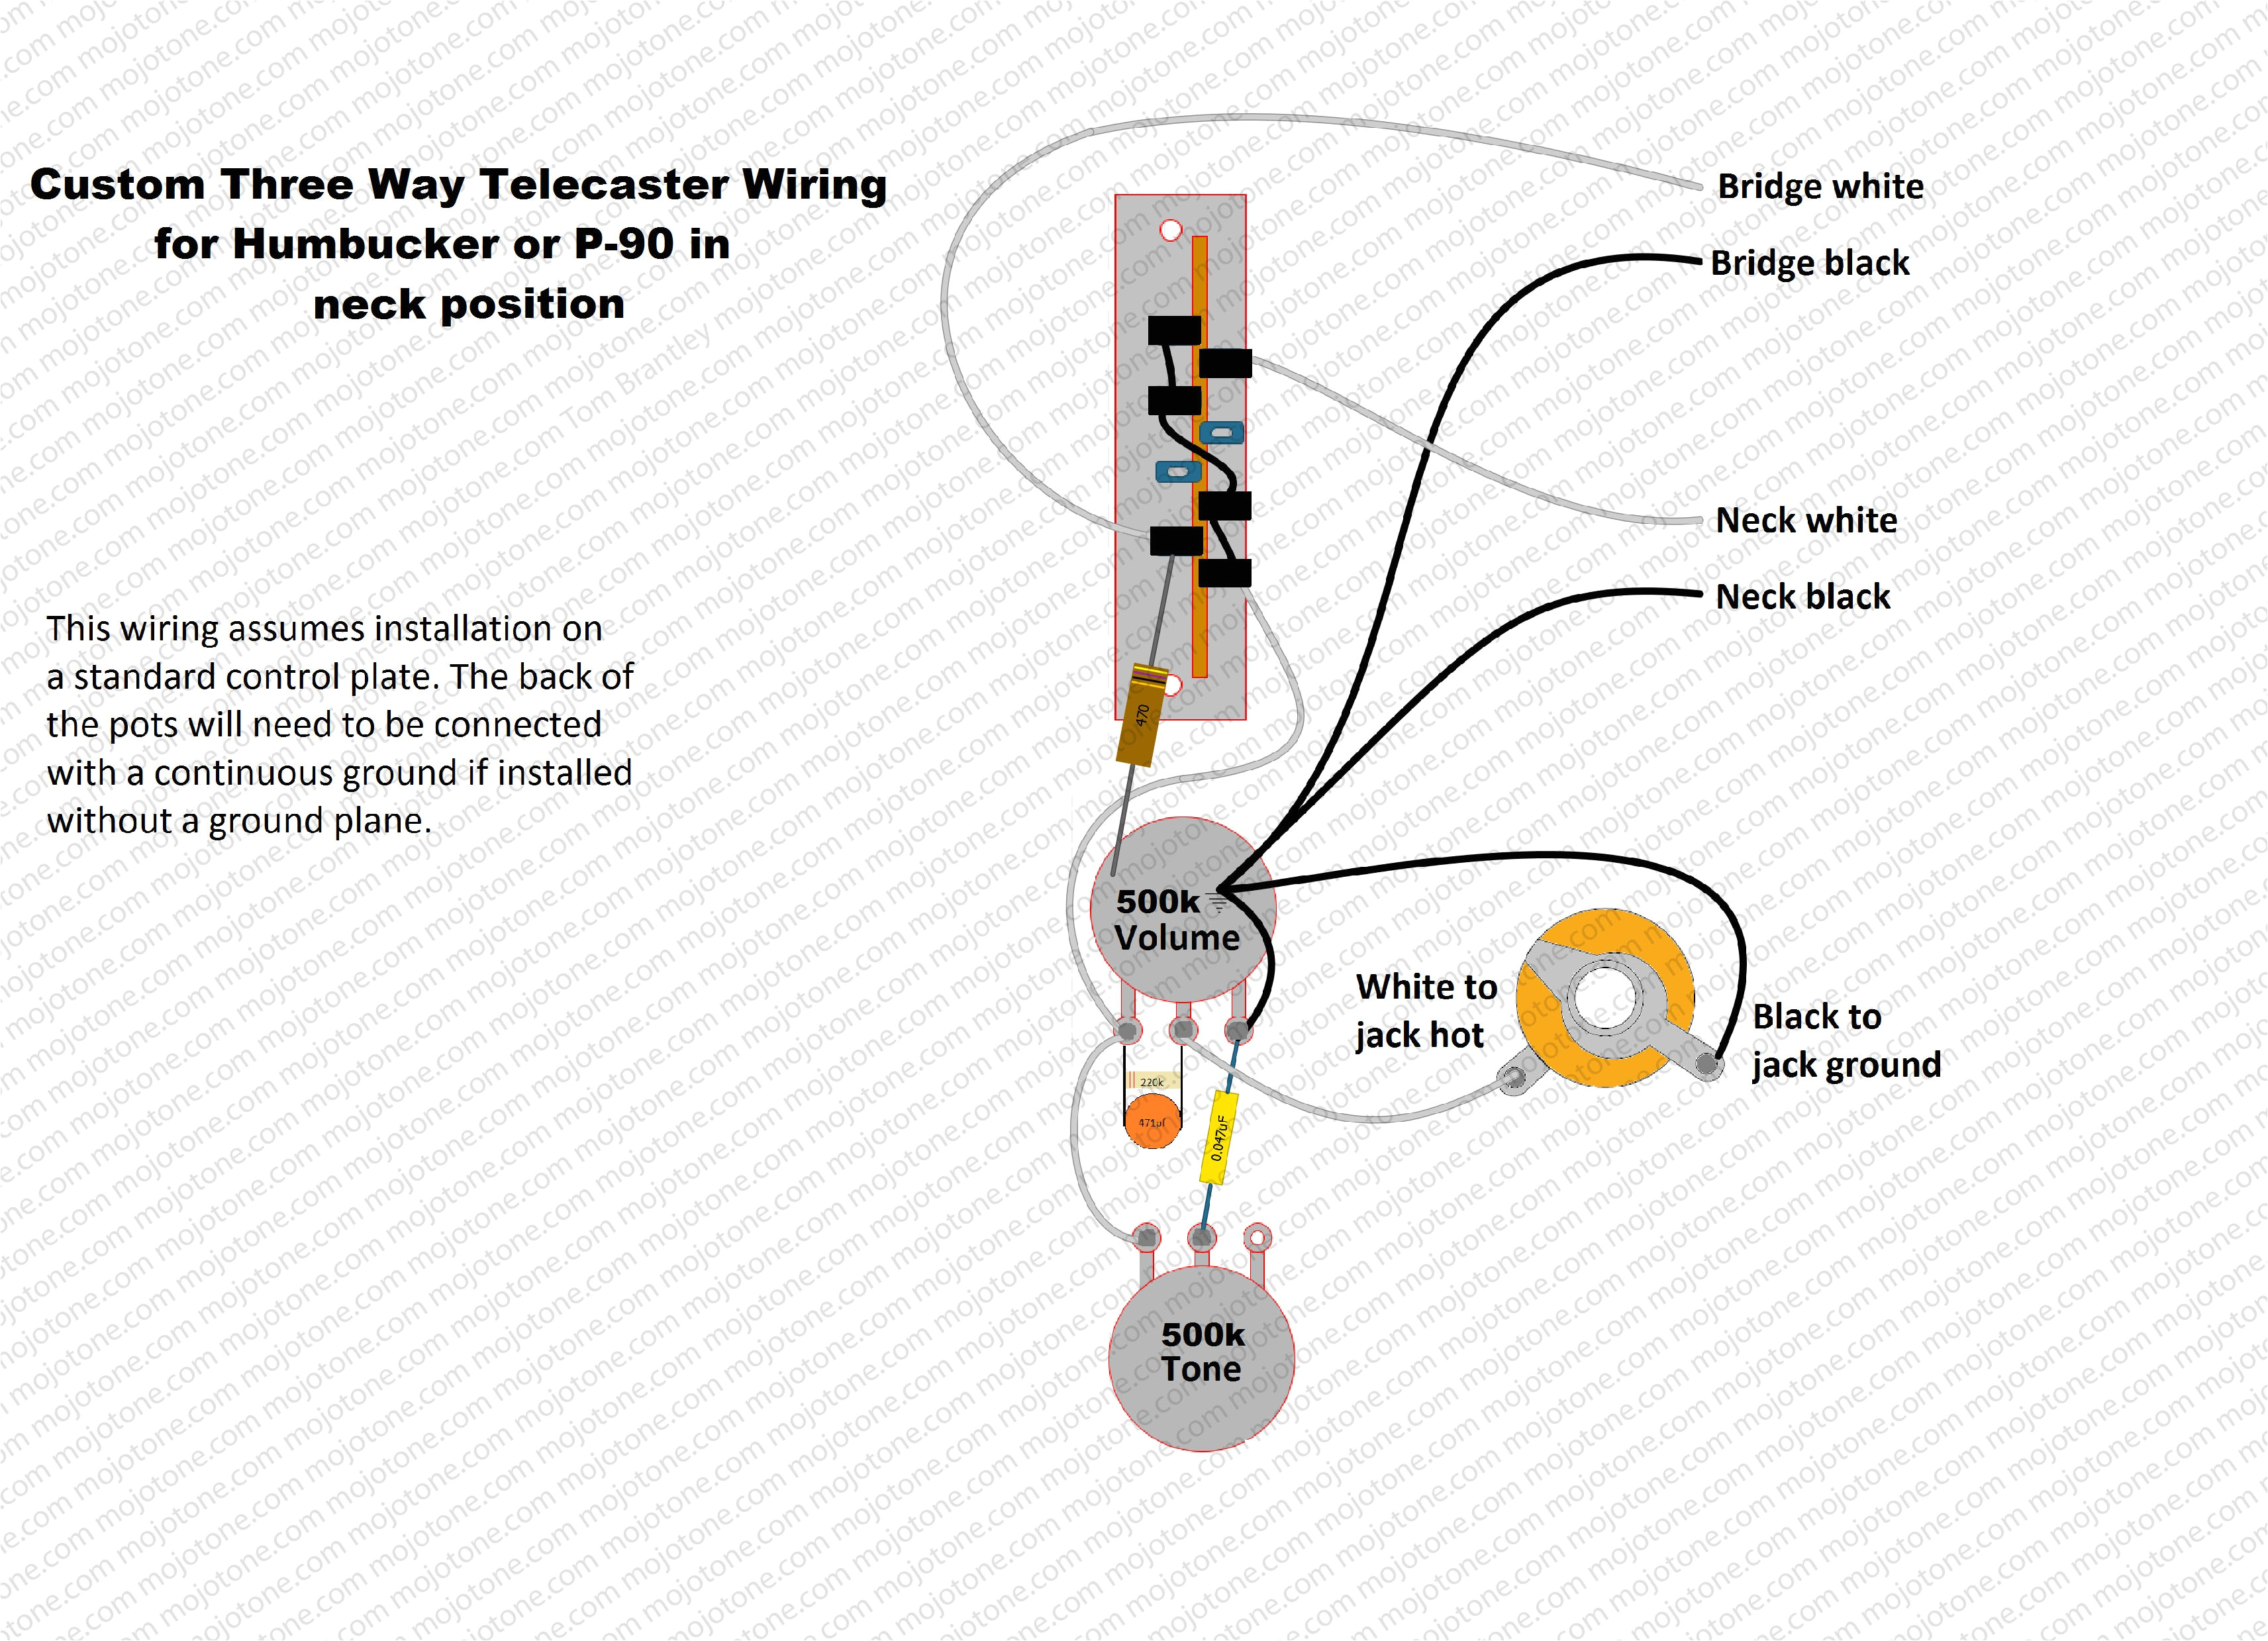 4 way tele switch with p90 help telecaster guitar forum custom for gfs pickups wiring diagram pickup jpg